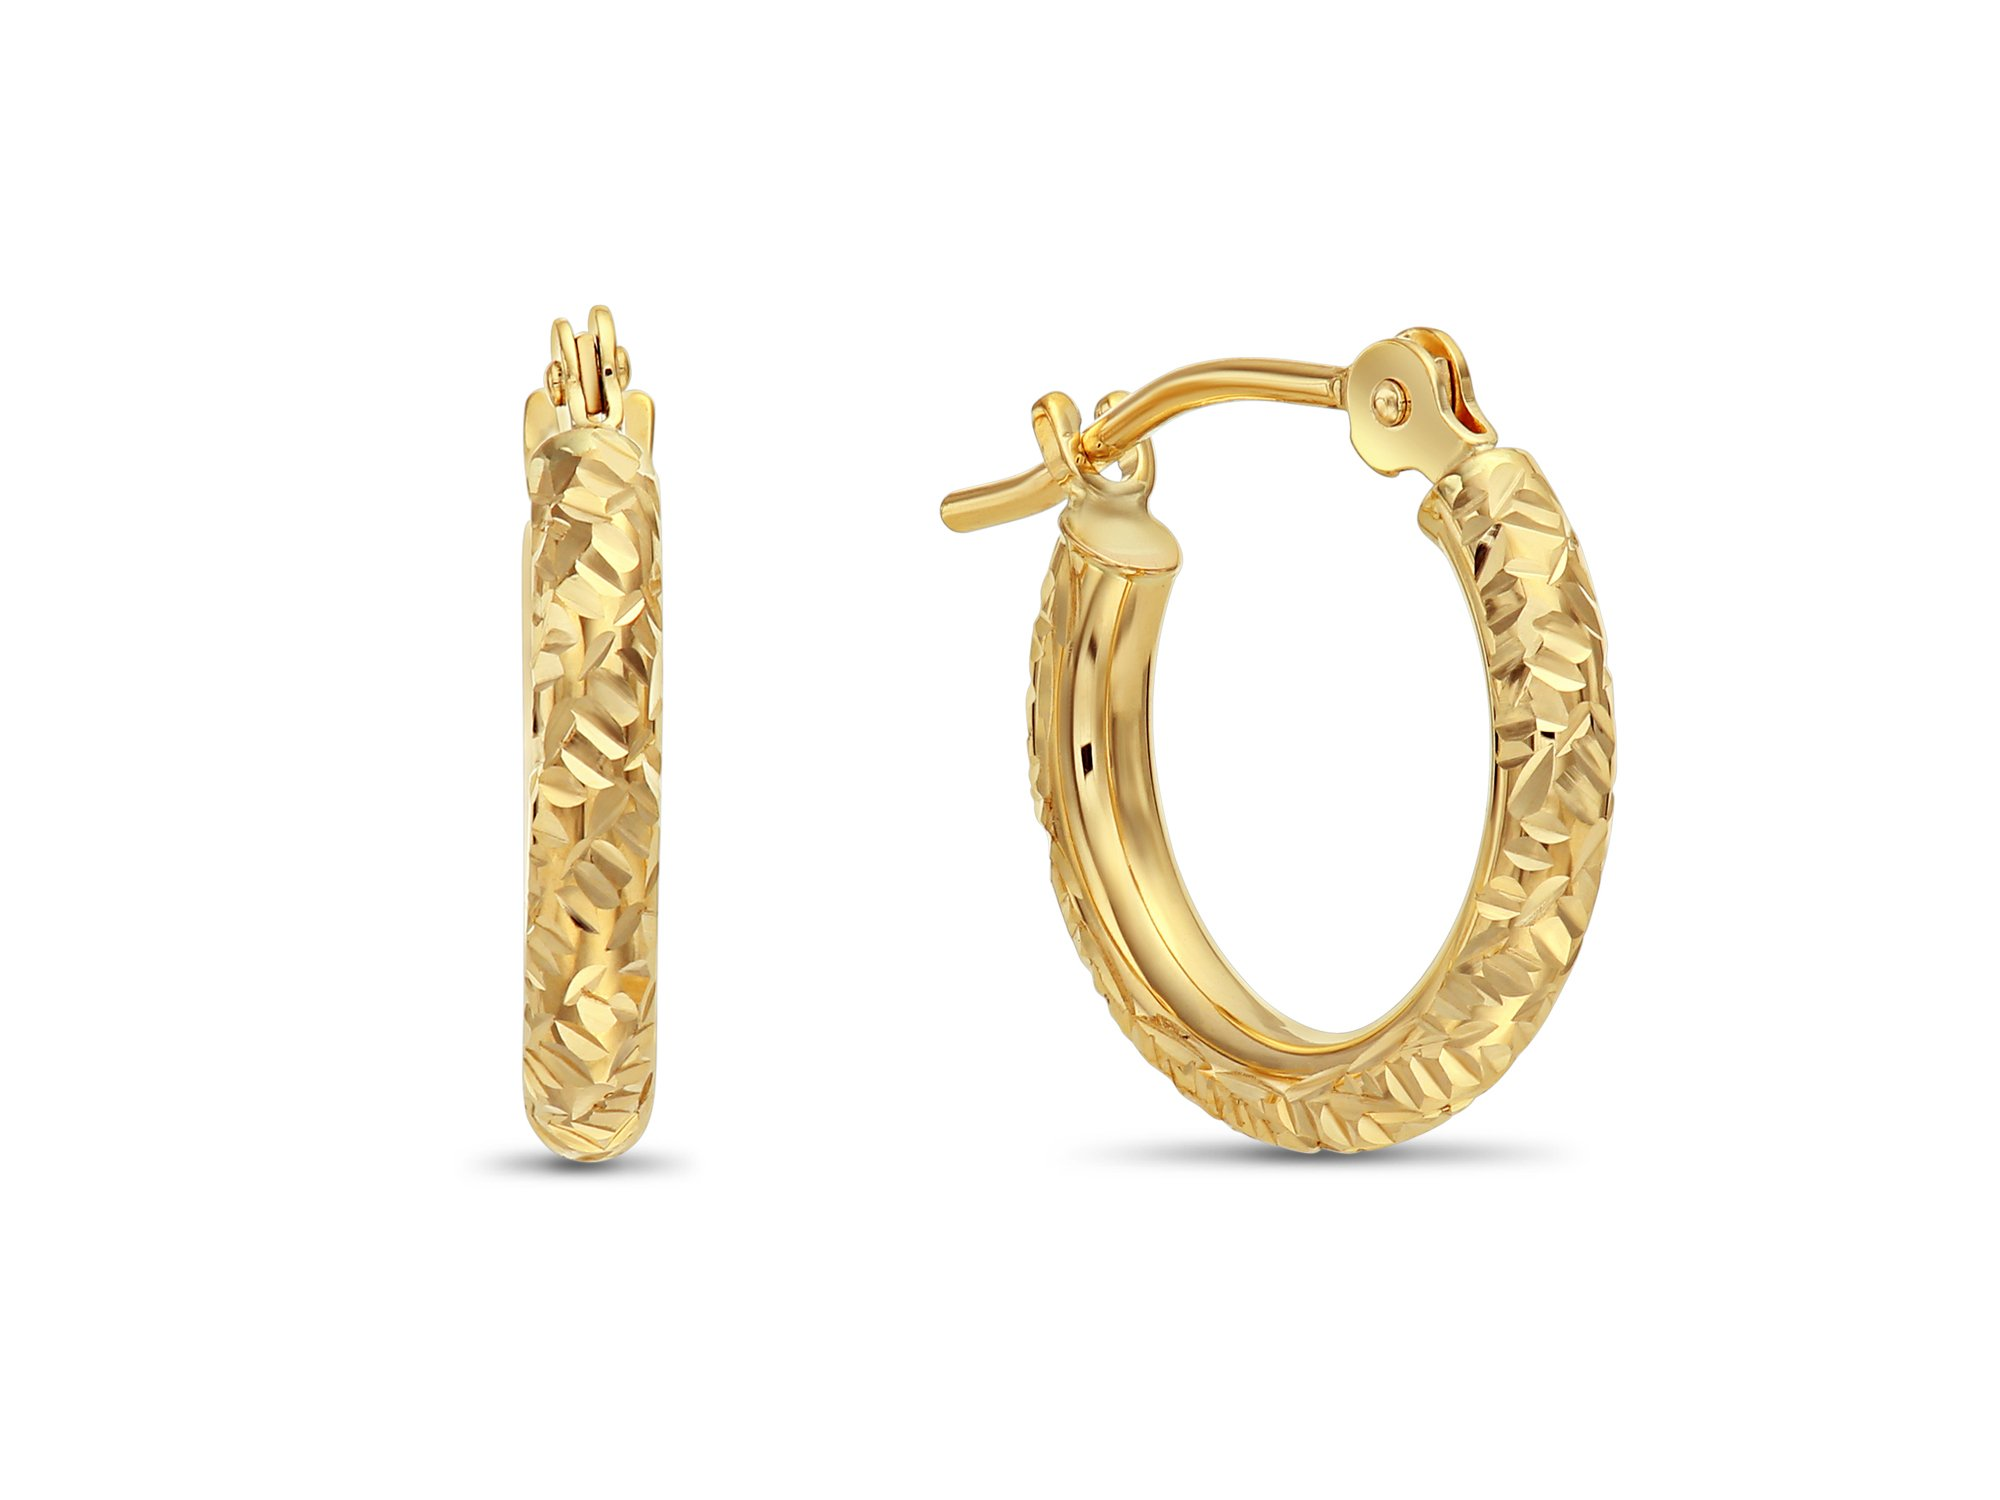 14k Gold Hand Engraved Diamond-cut Round Hoop Earrings, (0.5 inch Diameter) (yellow-gold) by TILO JEWELRY